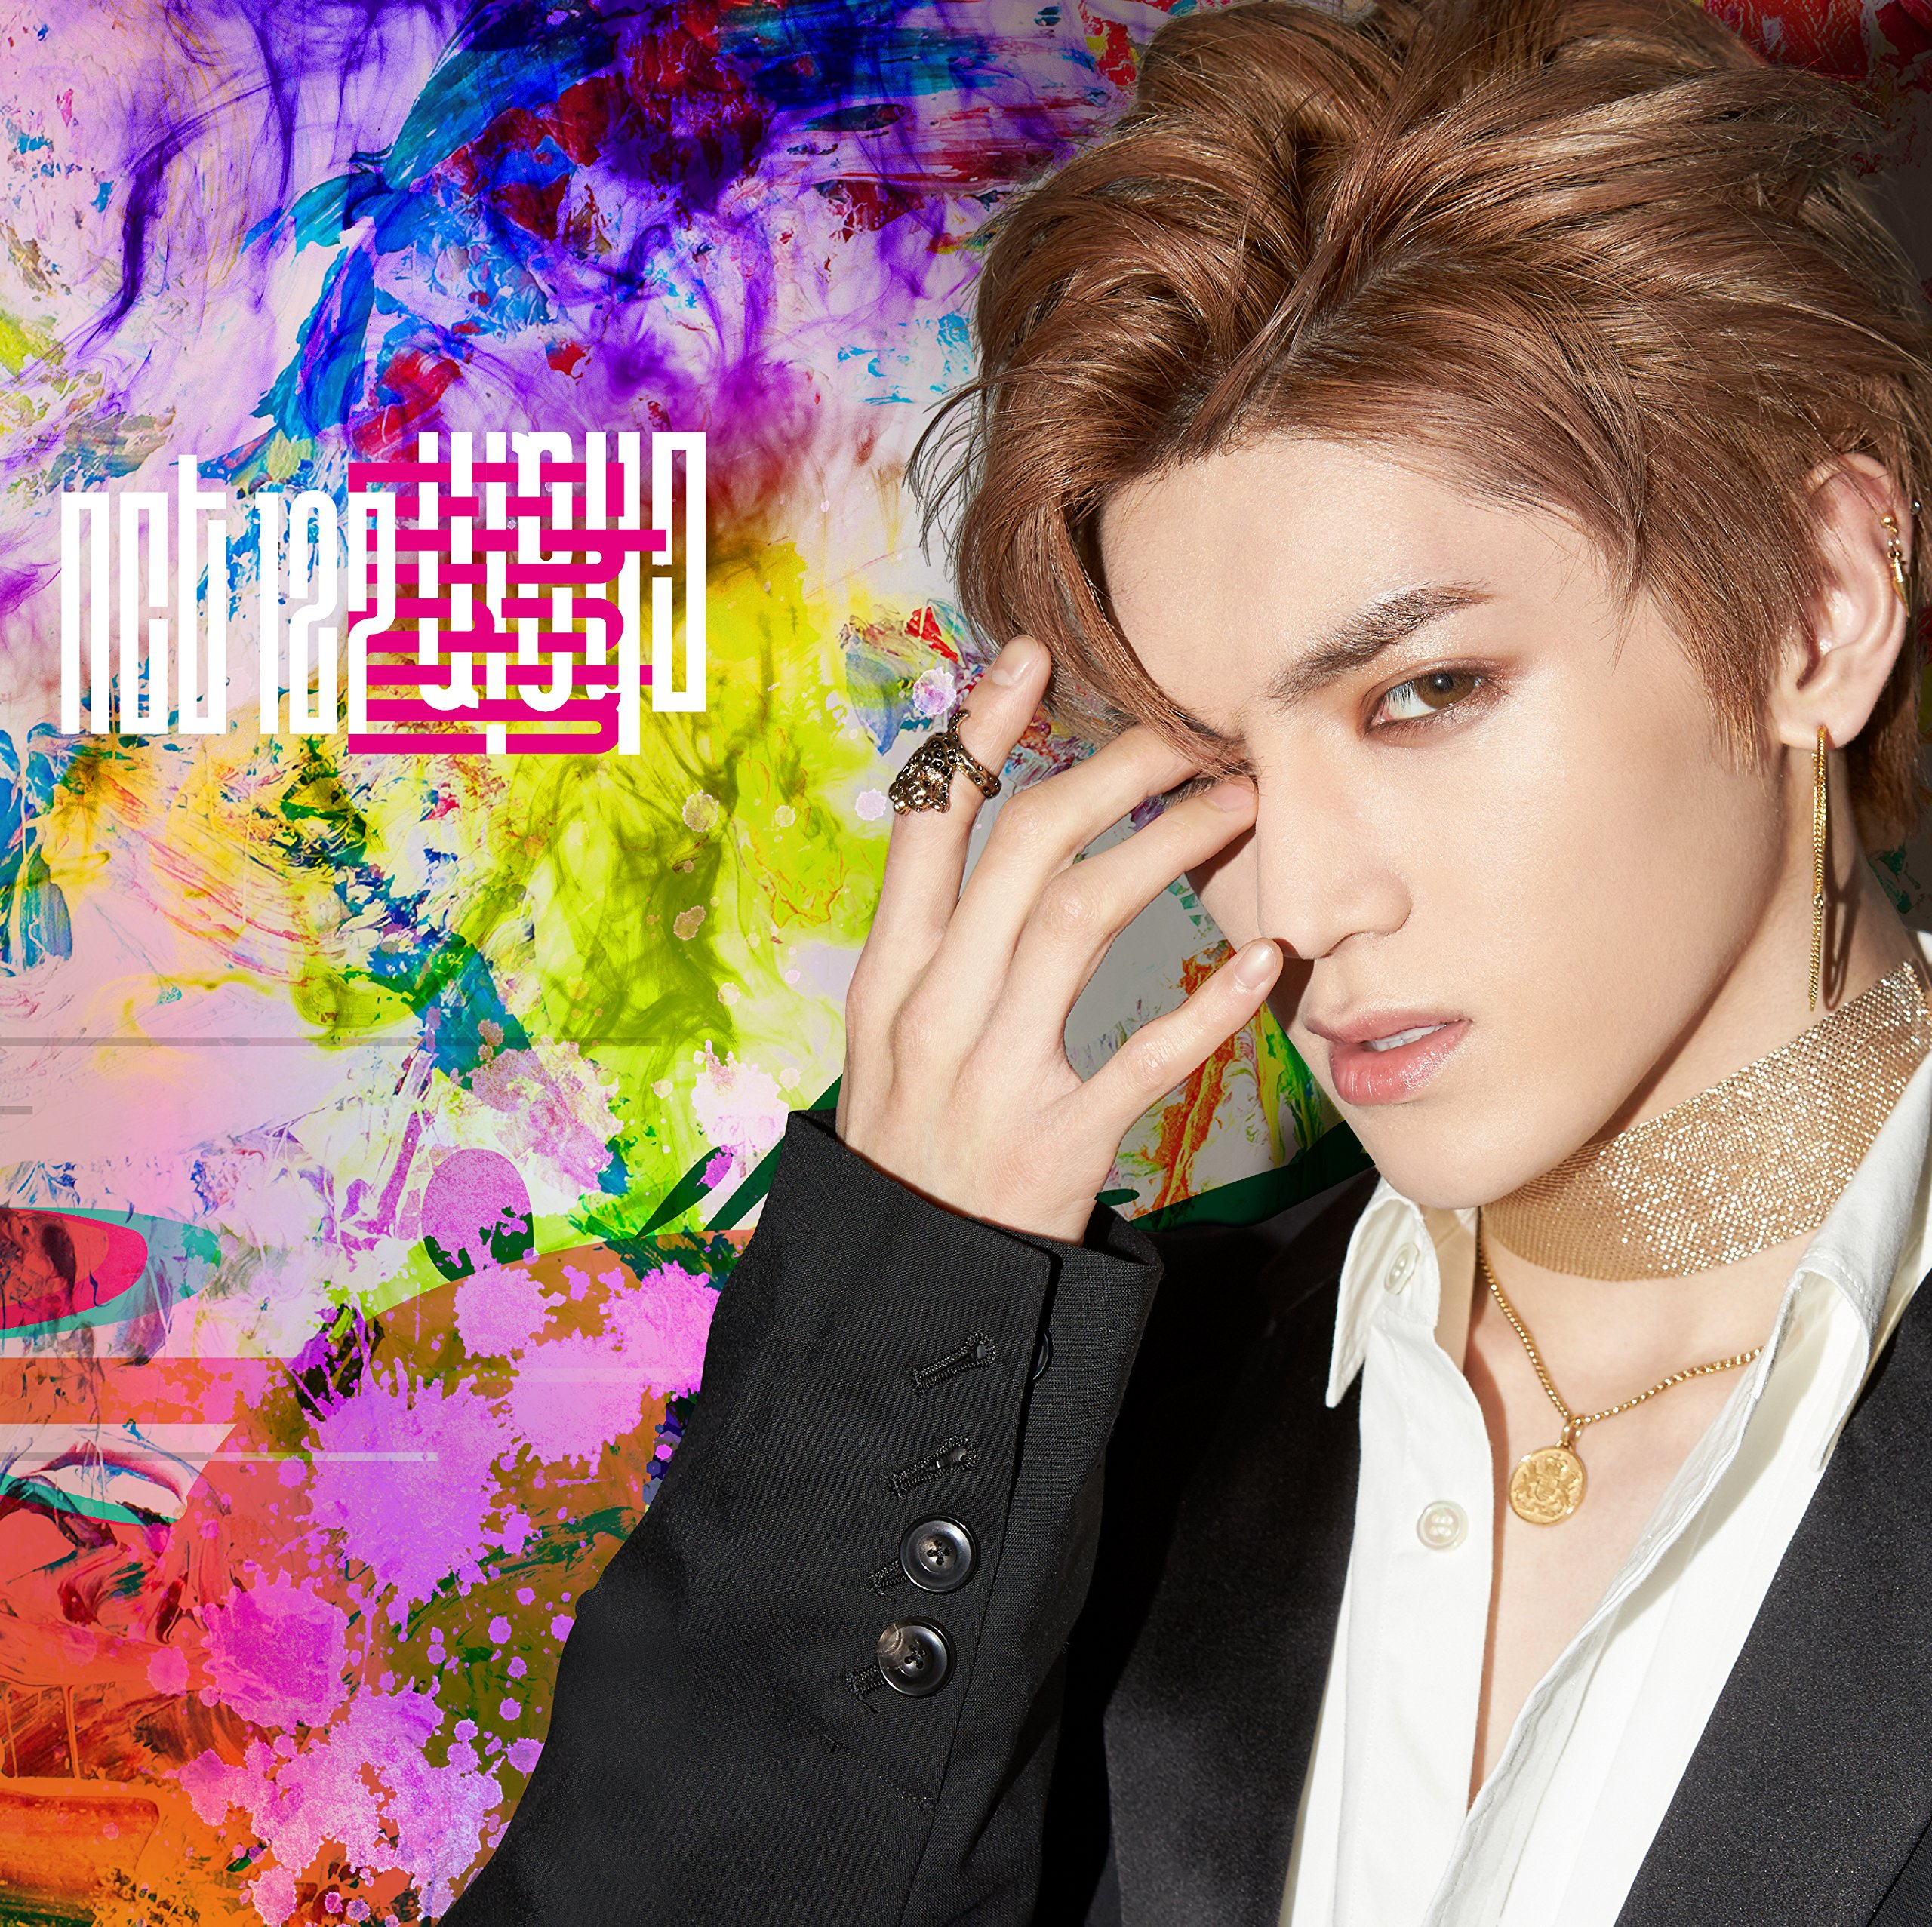 CD : NCT 127 - Chain: Taeyong Version (Japan - Import)